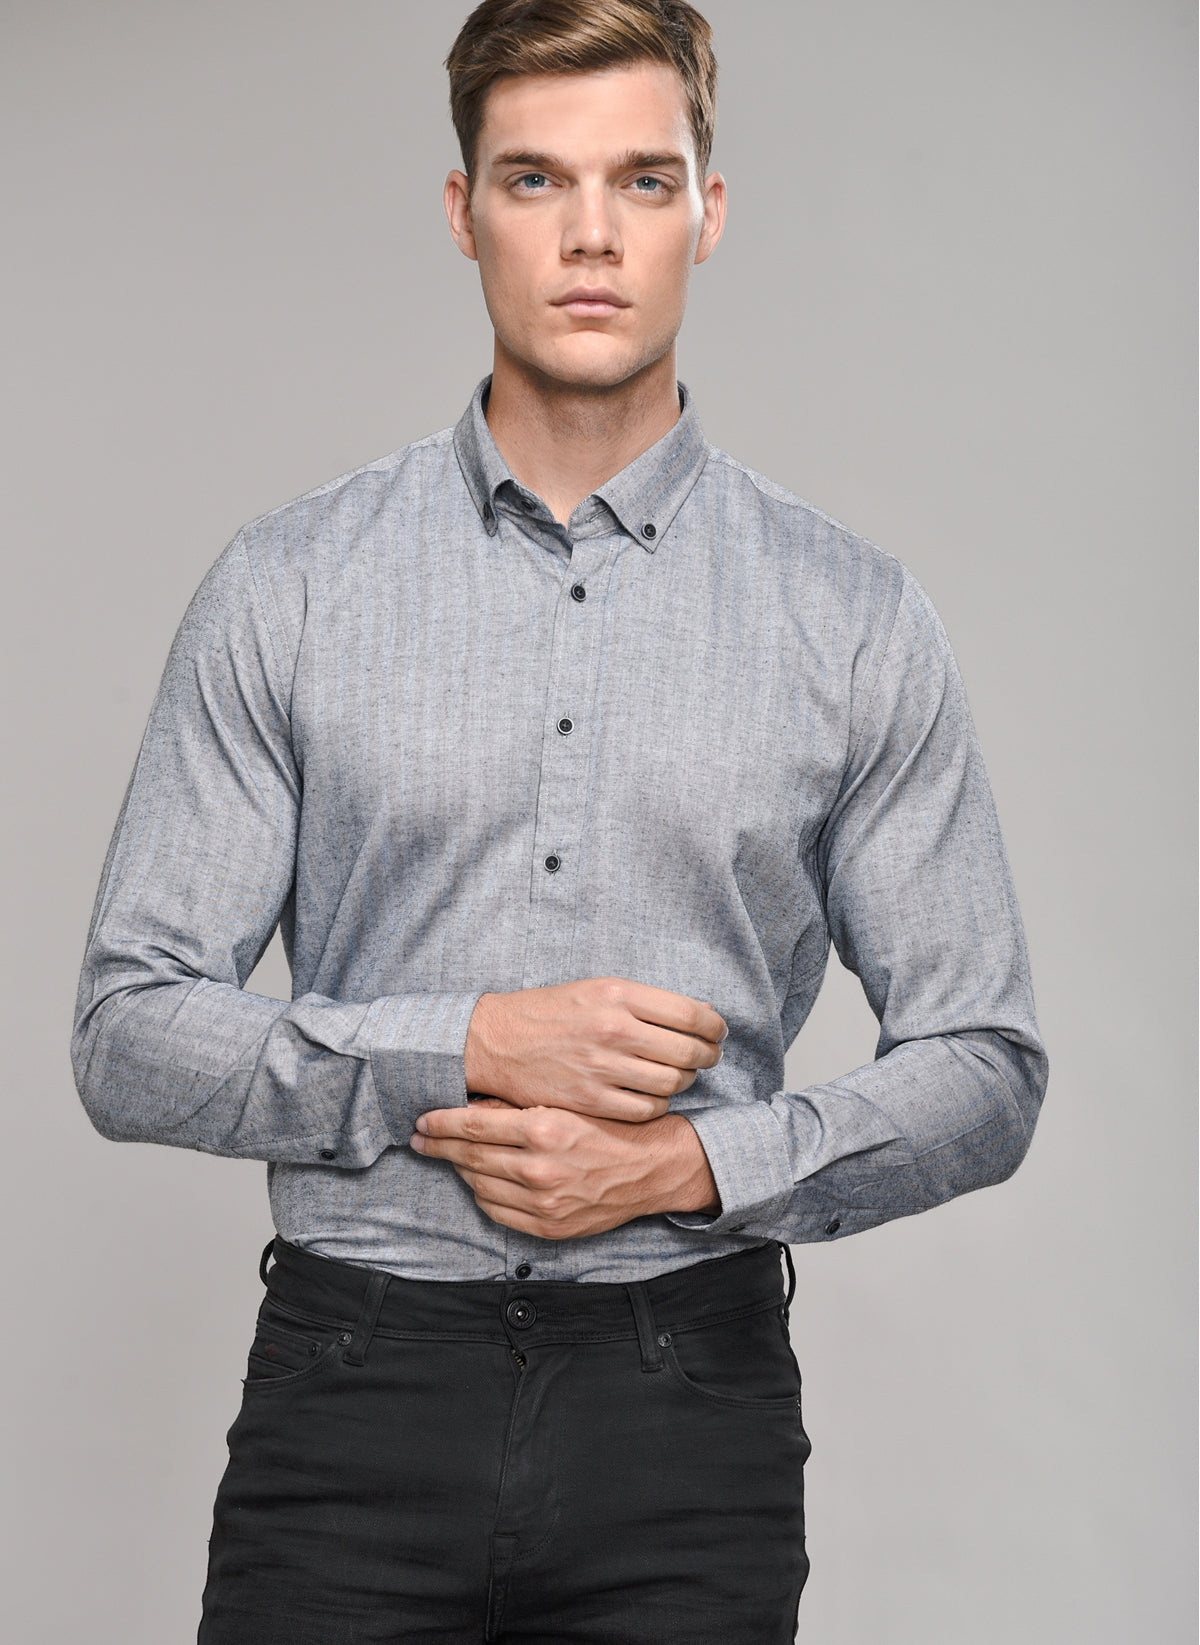 Herringbone Button-Down Shirt in Grey